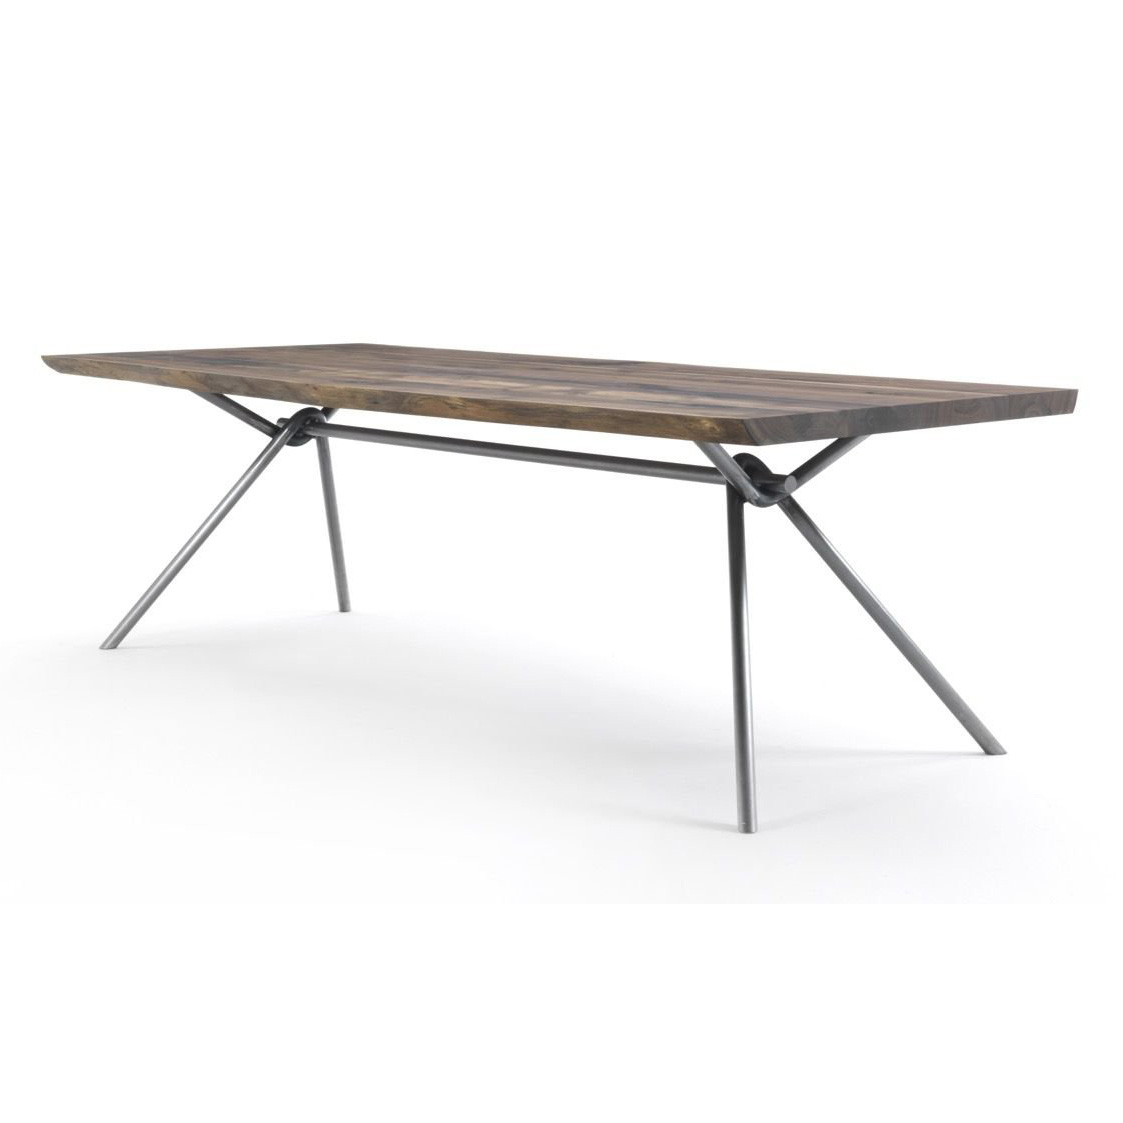 Iron Natural Sides dining table from Riva 1920